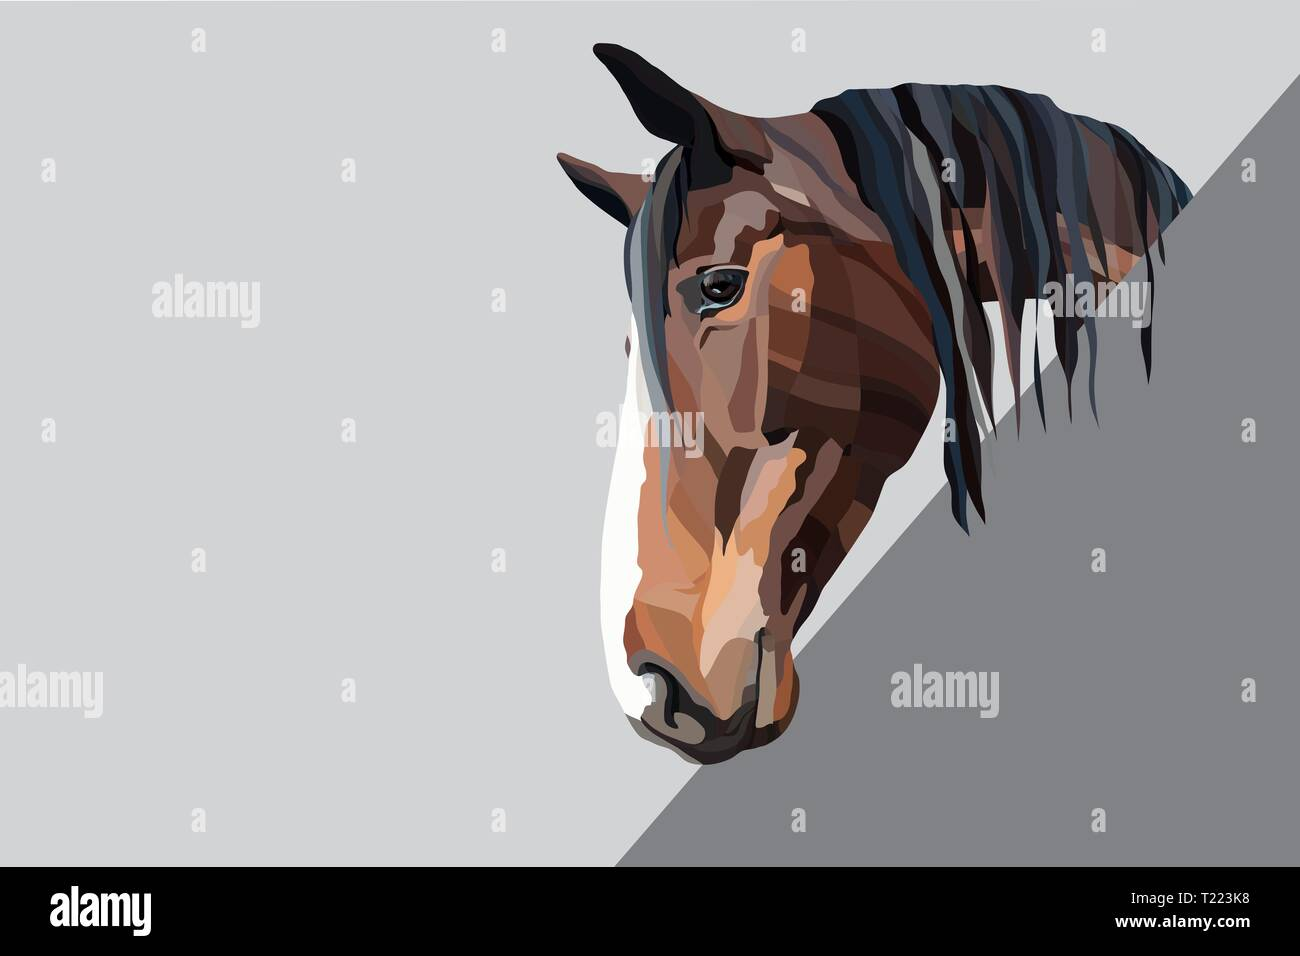 Brown horse head on a grey background - Stock Vector